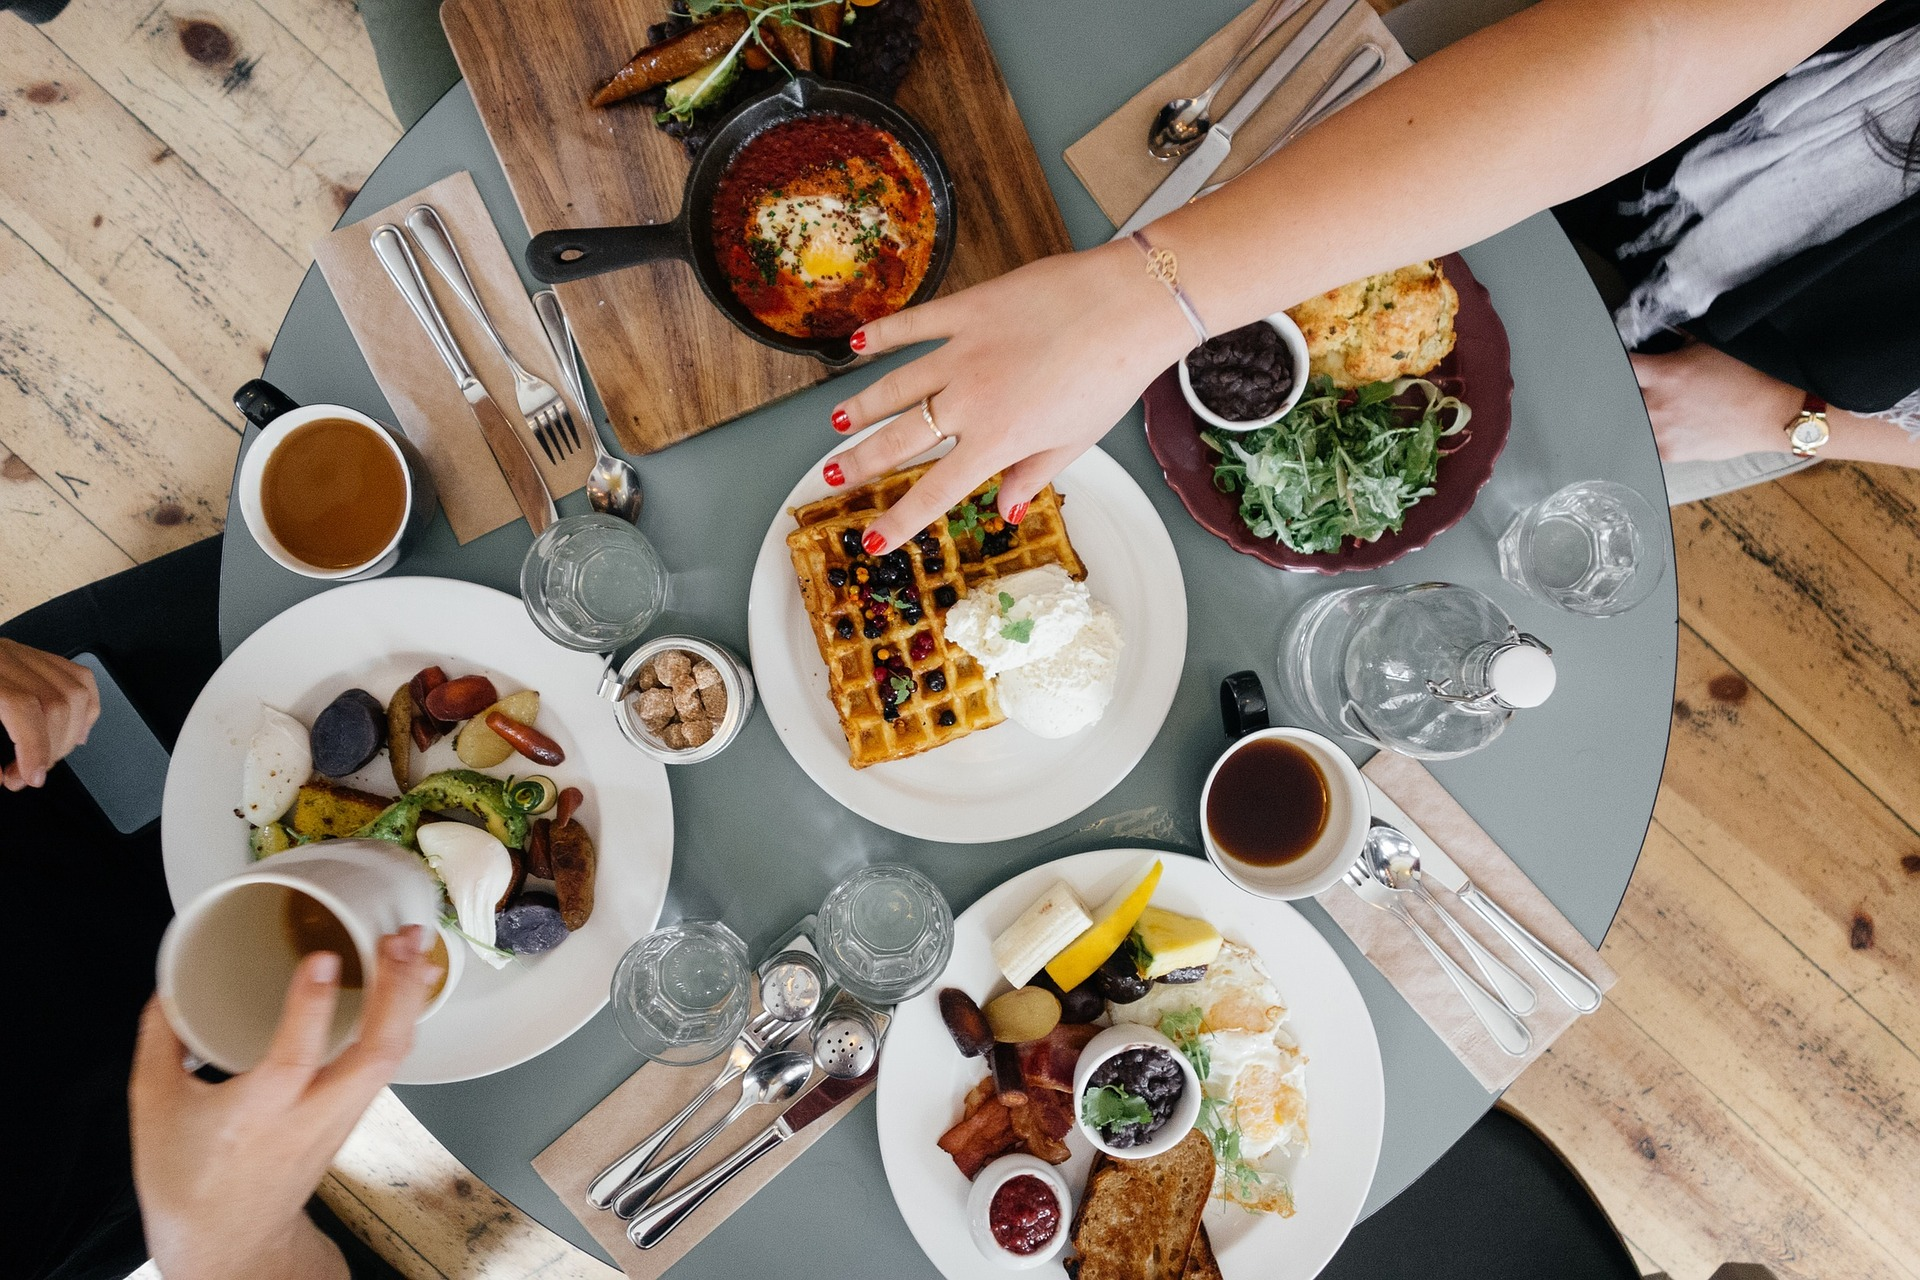 Restaurant reviews are critical to the success of your business. Here are the best restaurant review sites, and why a good review matters.